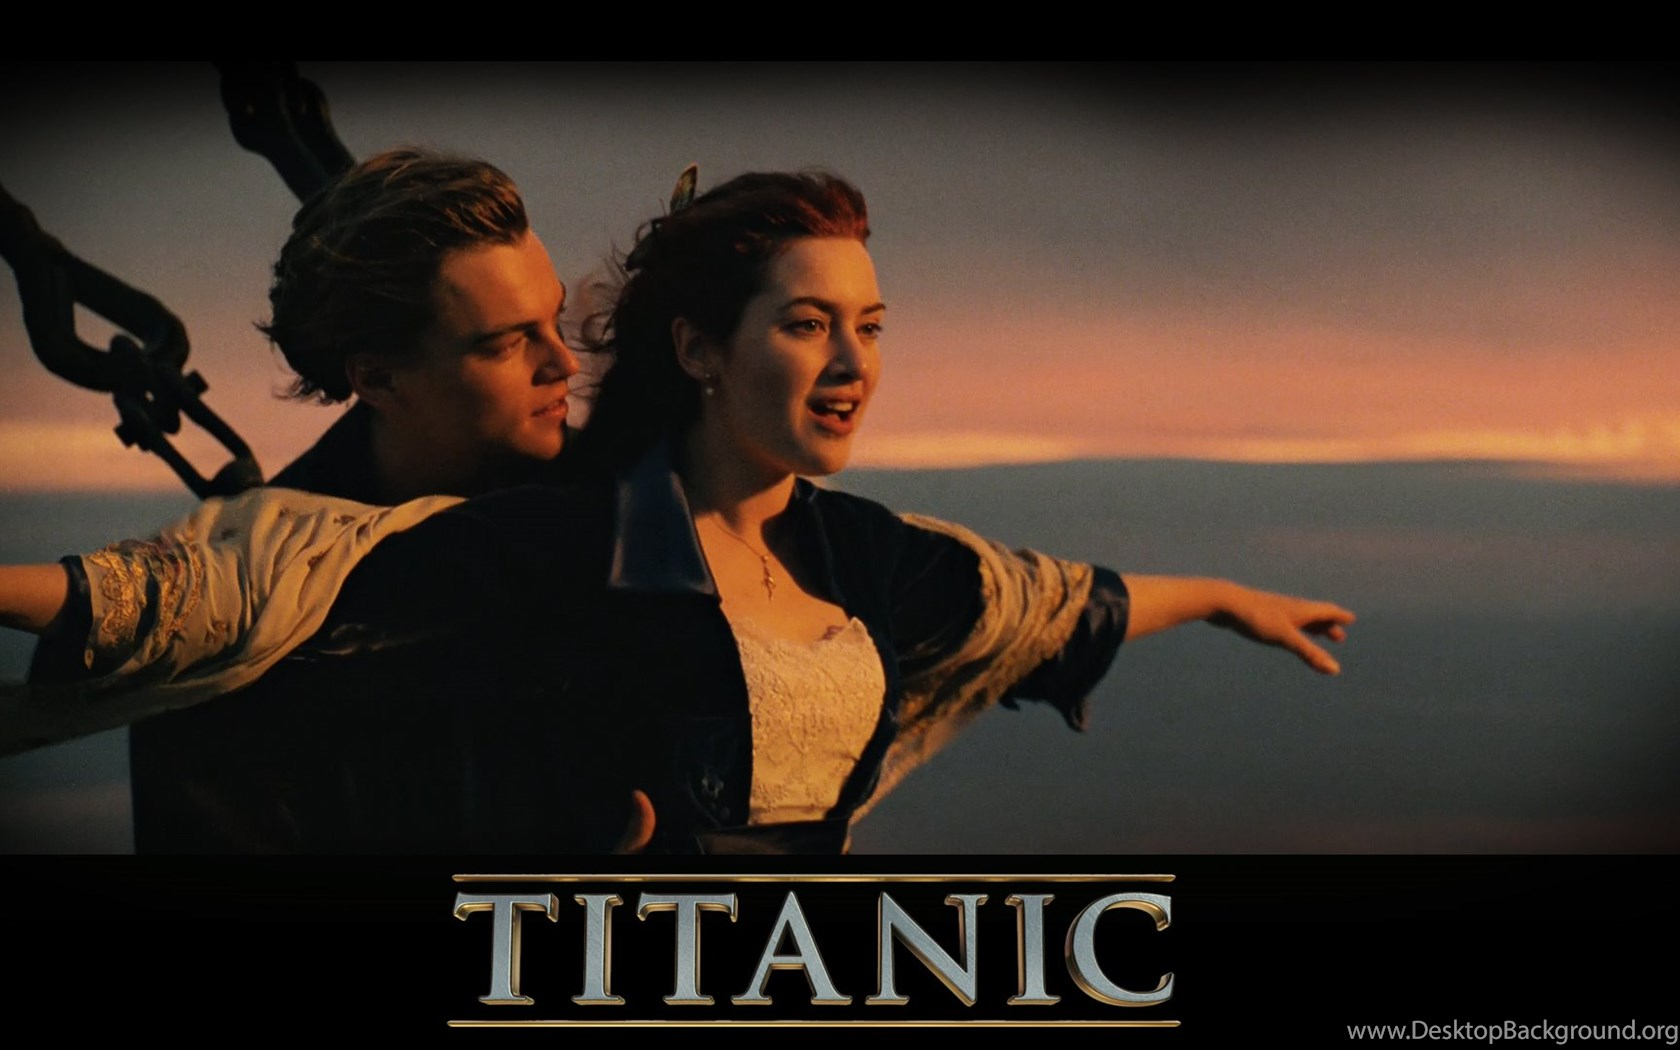 titanic romantic scene (jack and rose) hd wallpapers desktop background